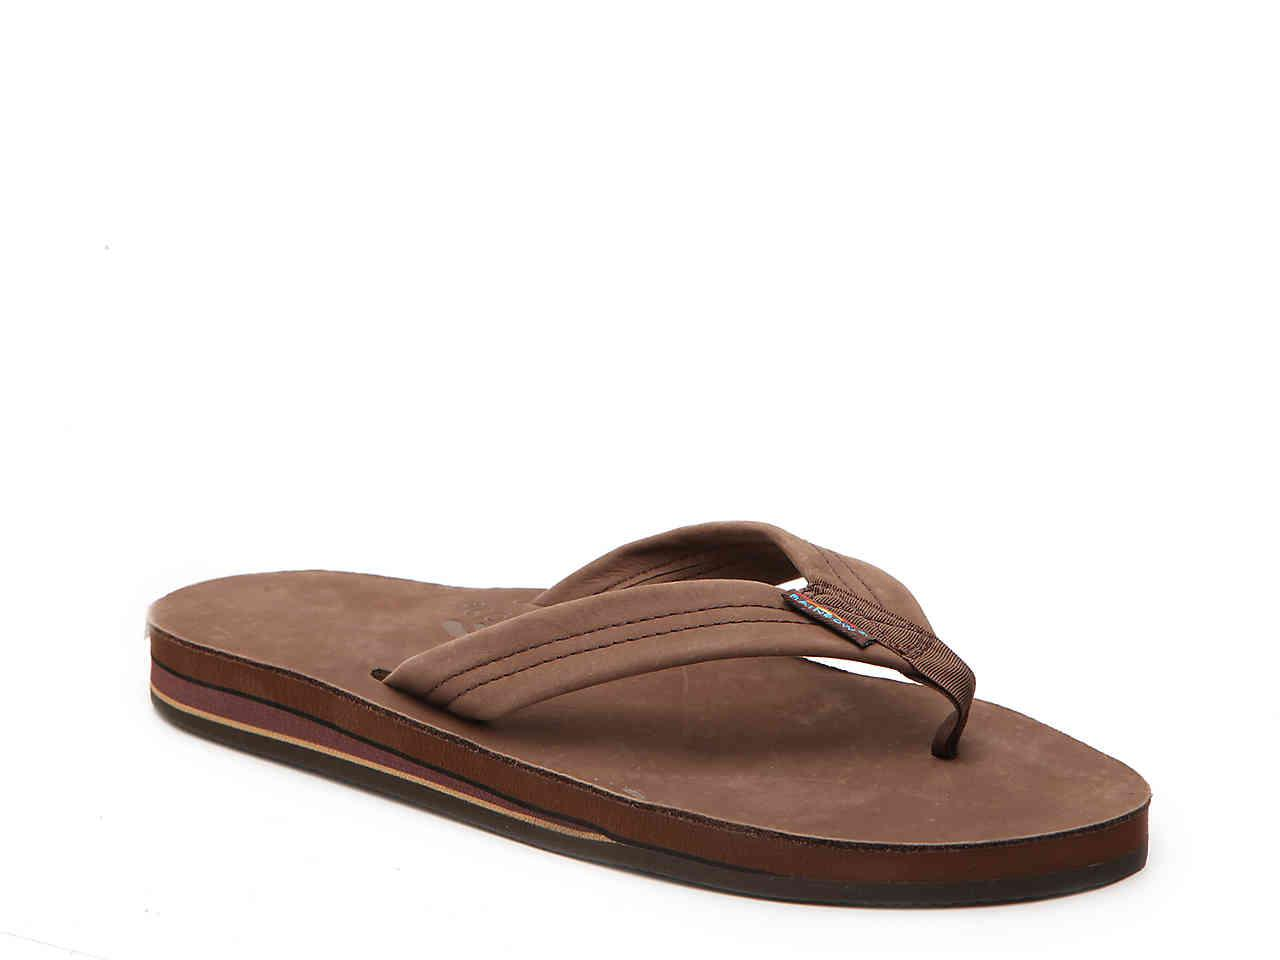 44d62461608ff Lyst - Rainbow Sandals Premier Leather Sandal in Brown for Men